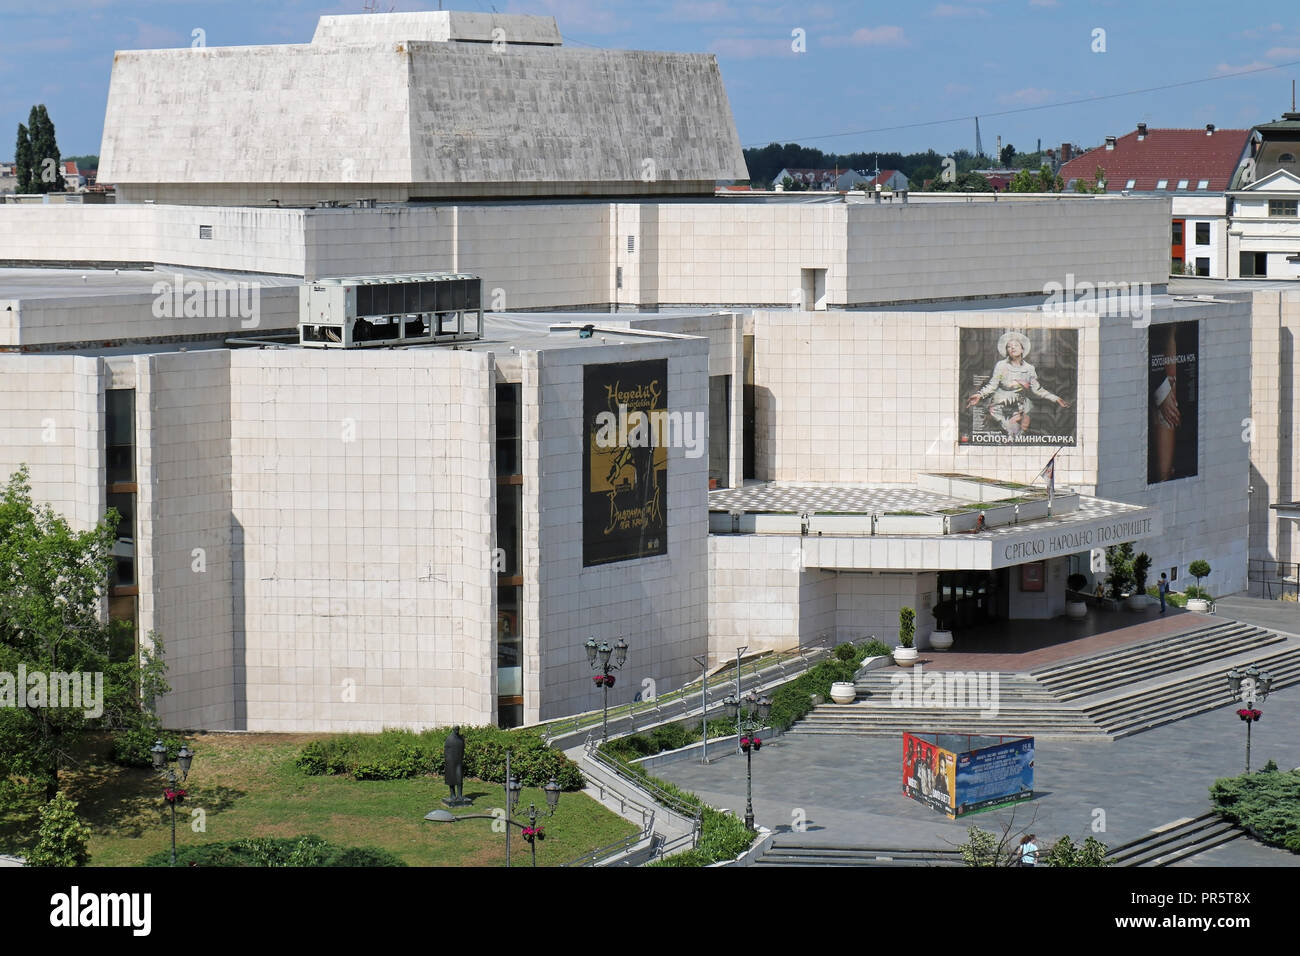 Serbian national theatre building entrance in Novi Sad during sunny day with posters promoting repertoire of current plays that can be seen. Stock Photo